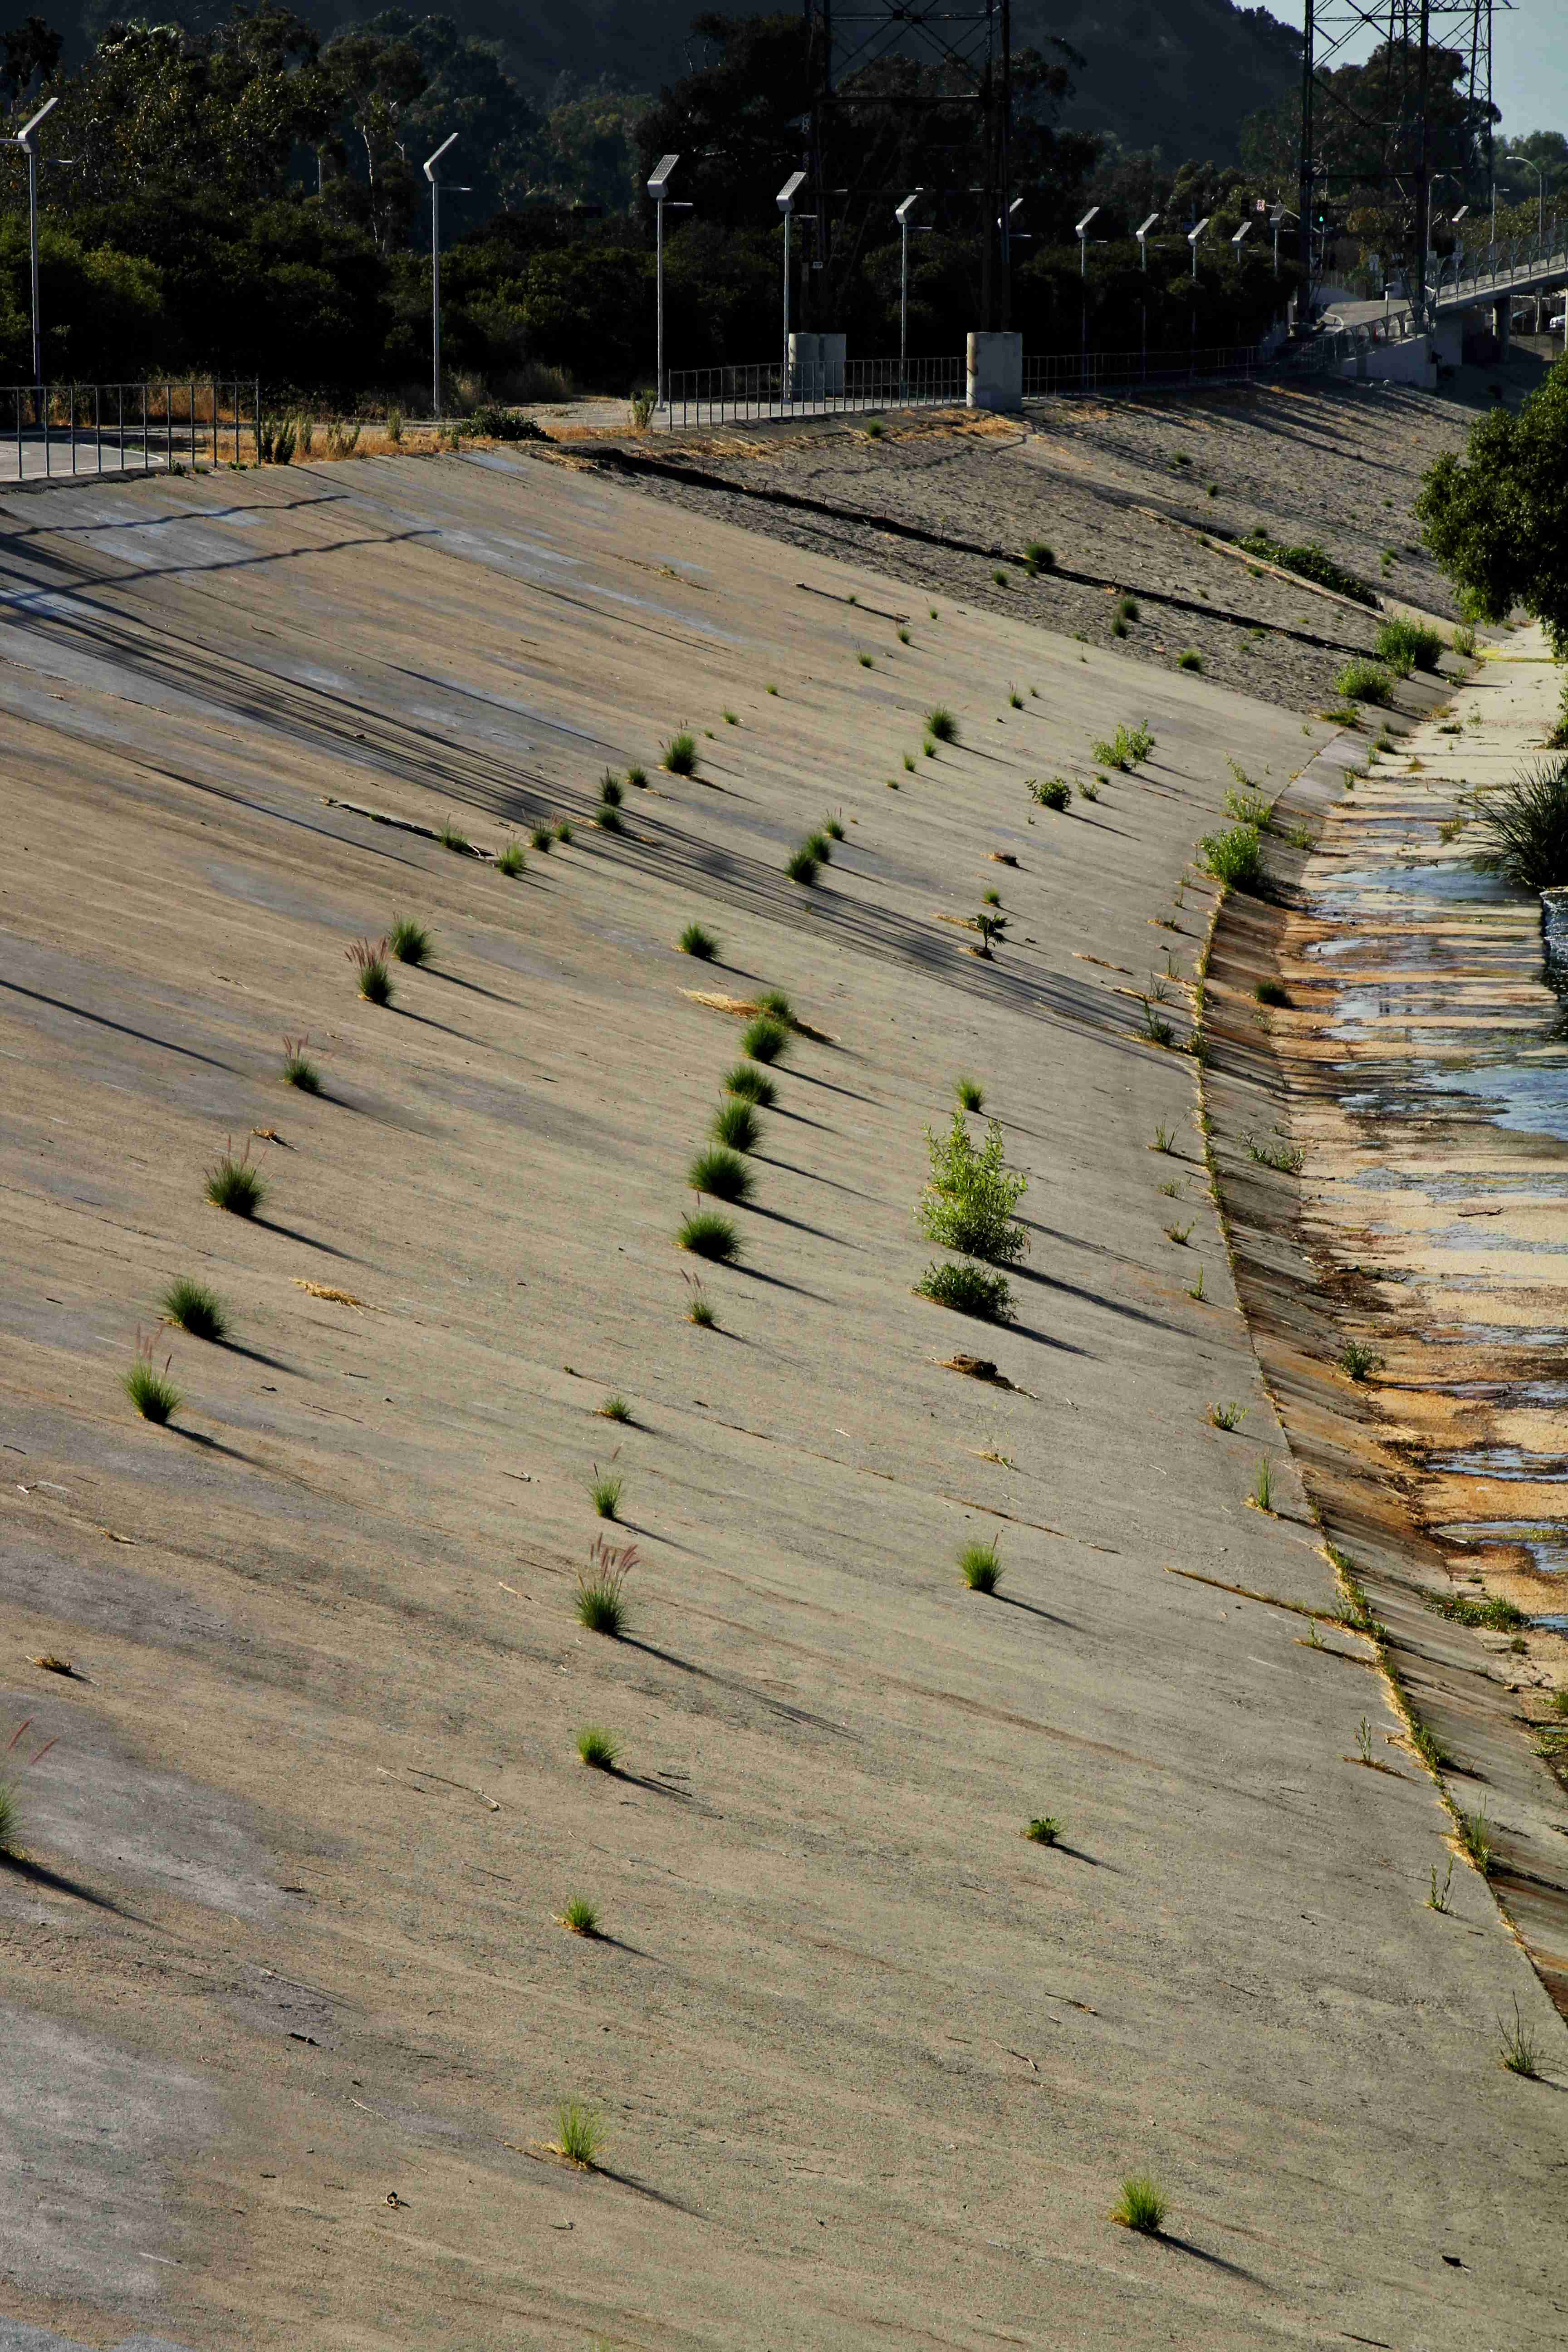 concrete trapezoidal river bank with plants growing in cracks